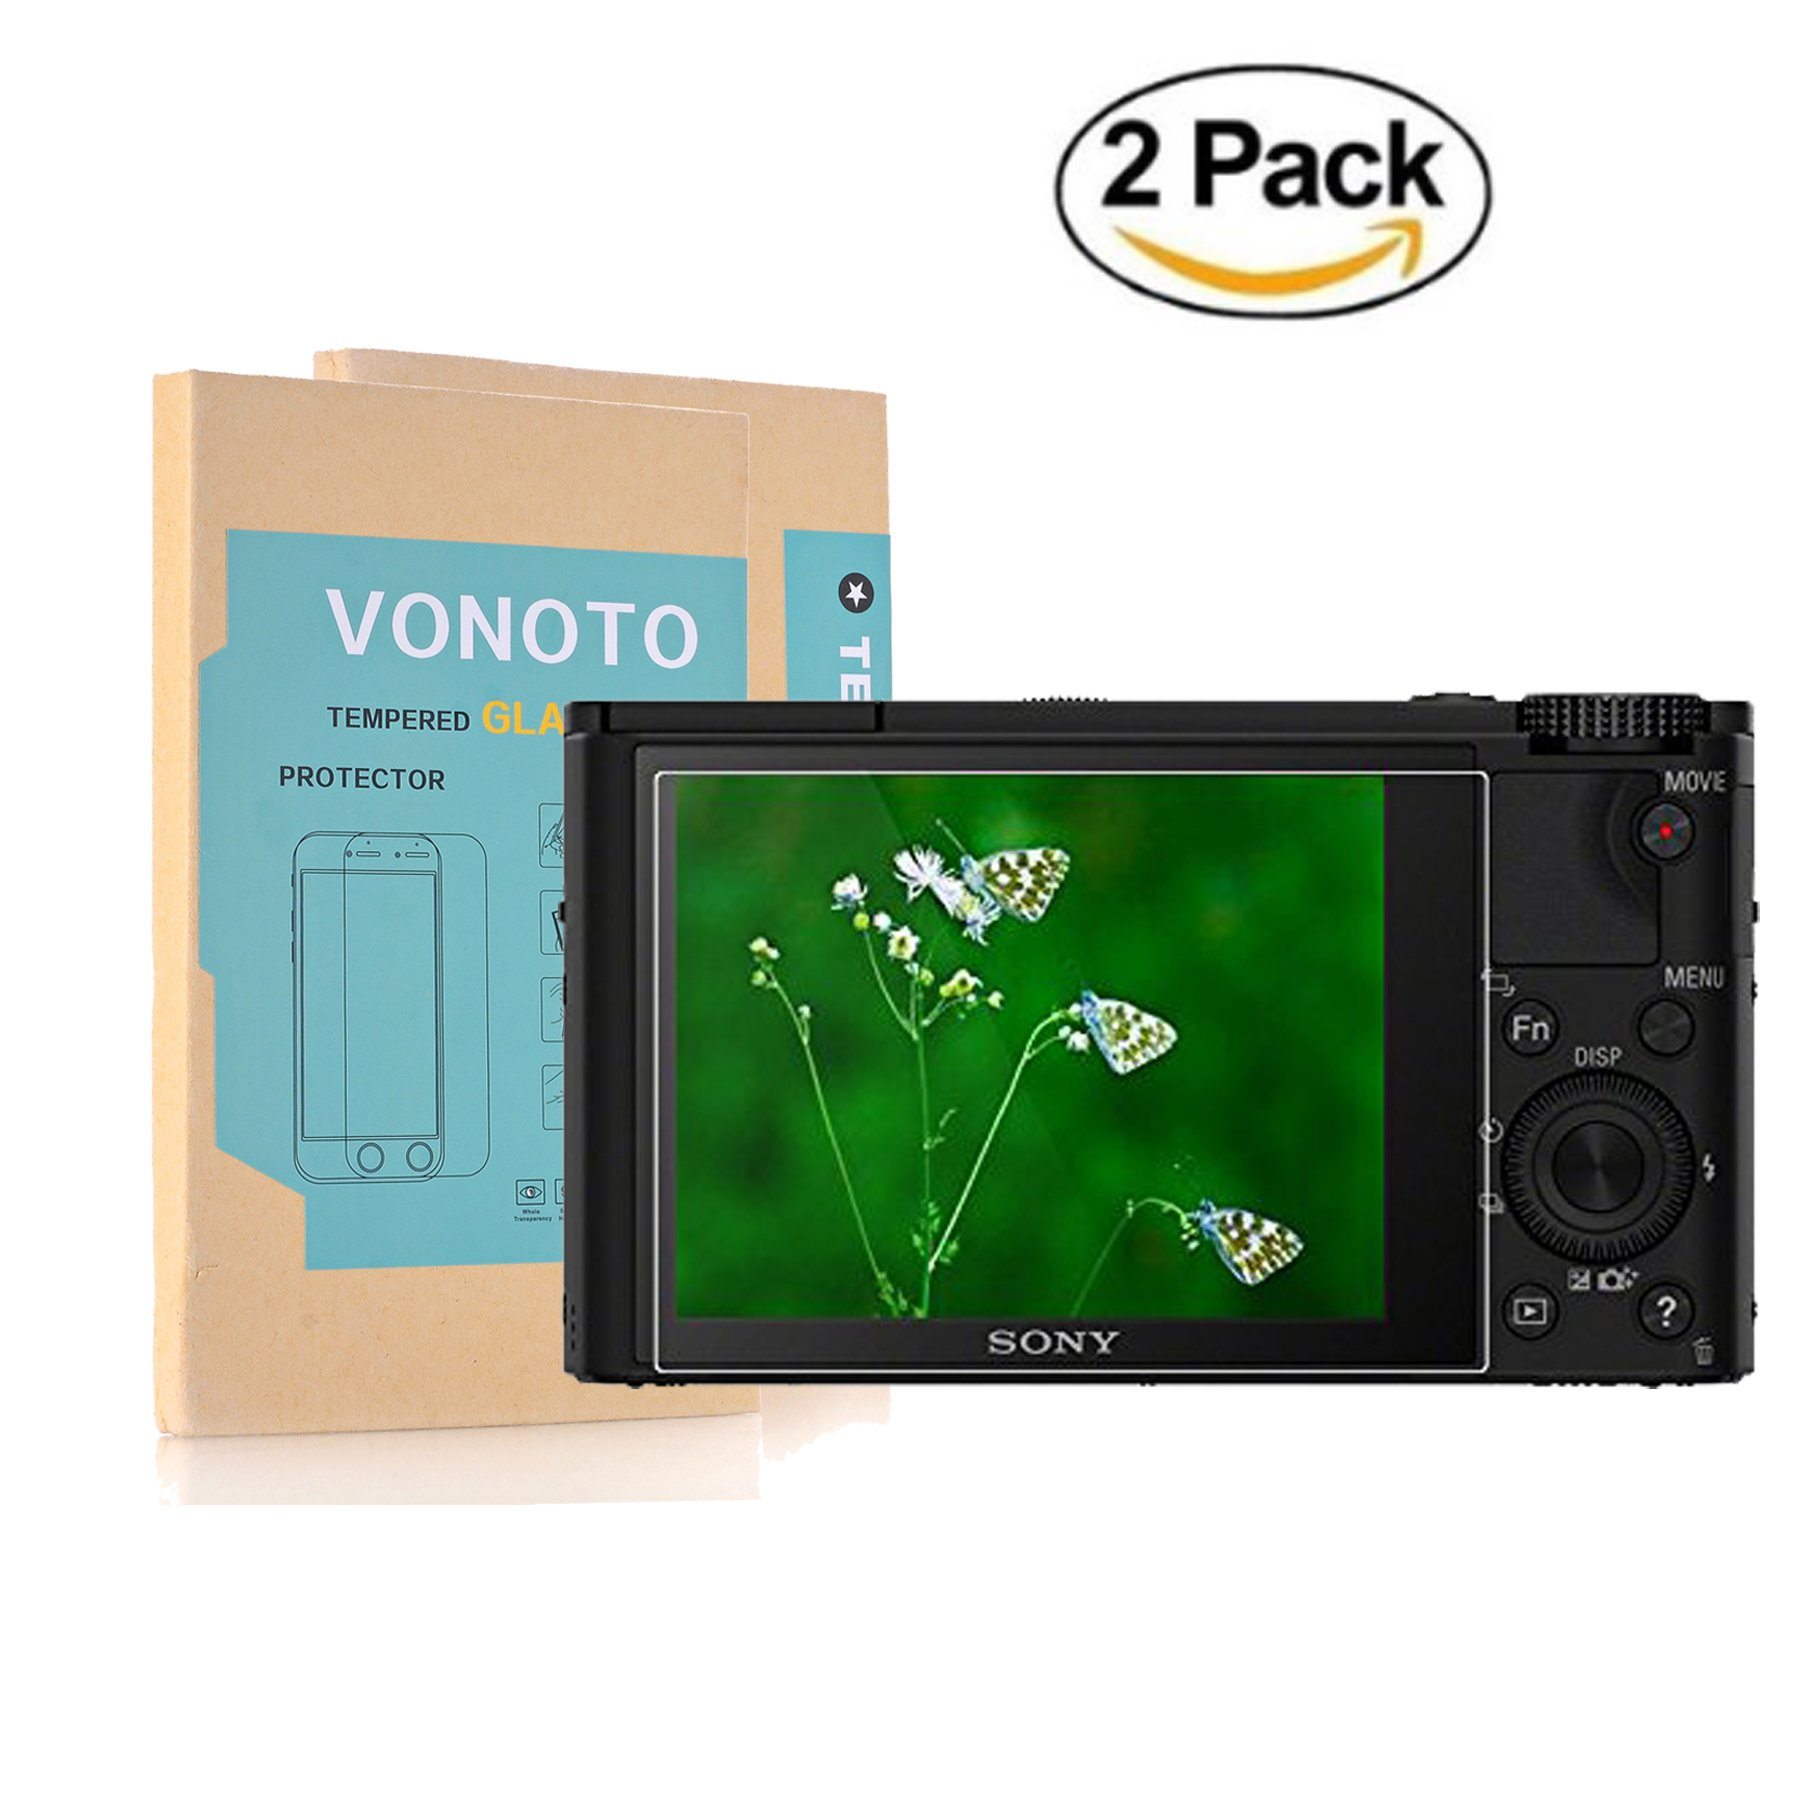 Sony RX100 RX1 A7R Camera Glass Screen Protector, VONOTO 2 PACK 0.3mm Thickness Tempered Glass Screen Protector Film Foils for Sony RX100,RX100 M2/II, RX1, RX1 R, A7R Camera